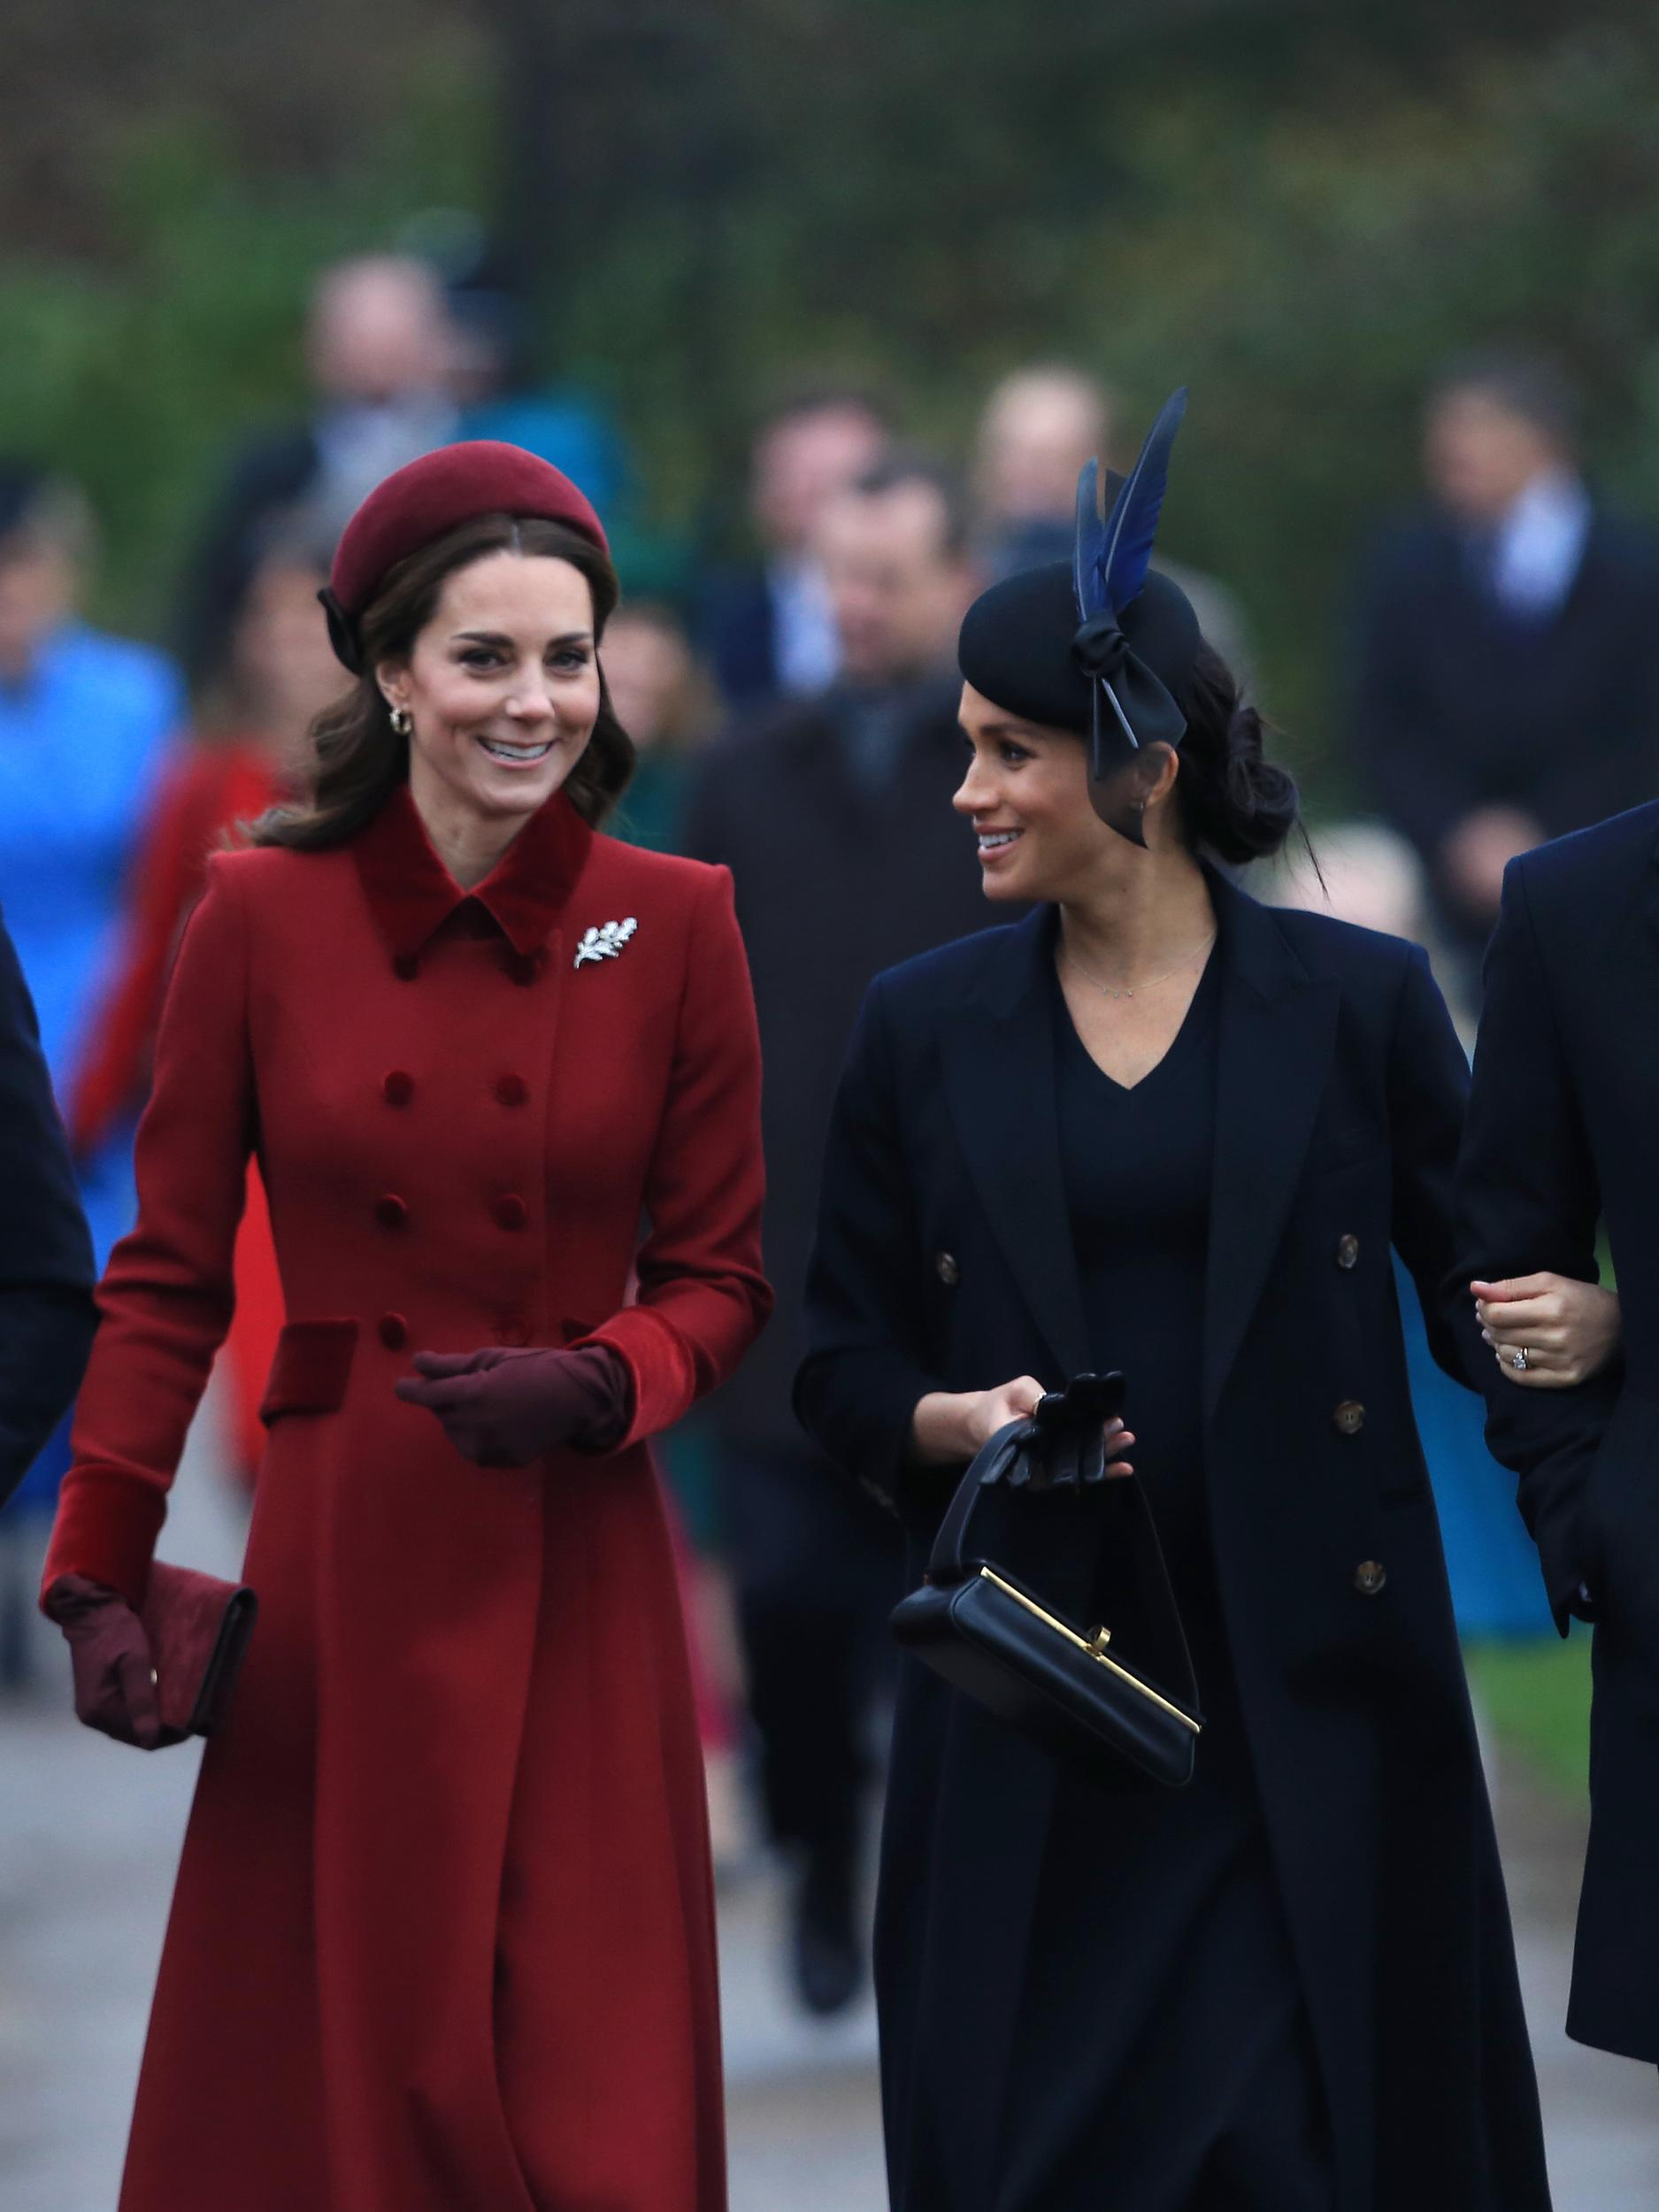 KING'S LYNN, ENGLAND - DECEMBER 25: Catherine, Duchess of Cambridge and Meghan, Duchess of Sussex arrive to attend Christmas Day Church service at Church of St Mary Magdalene on the Sandringham estate on December 25, 2018 in King's Lynn, England. (Photo by Stephen Pond/Getty Images)